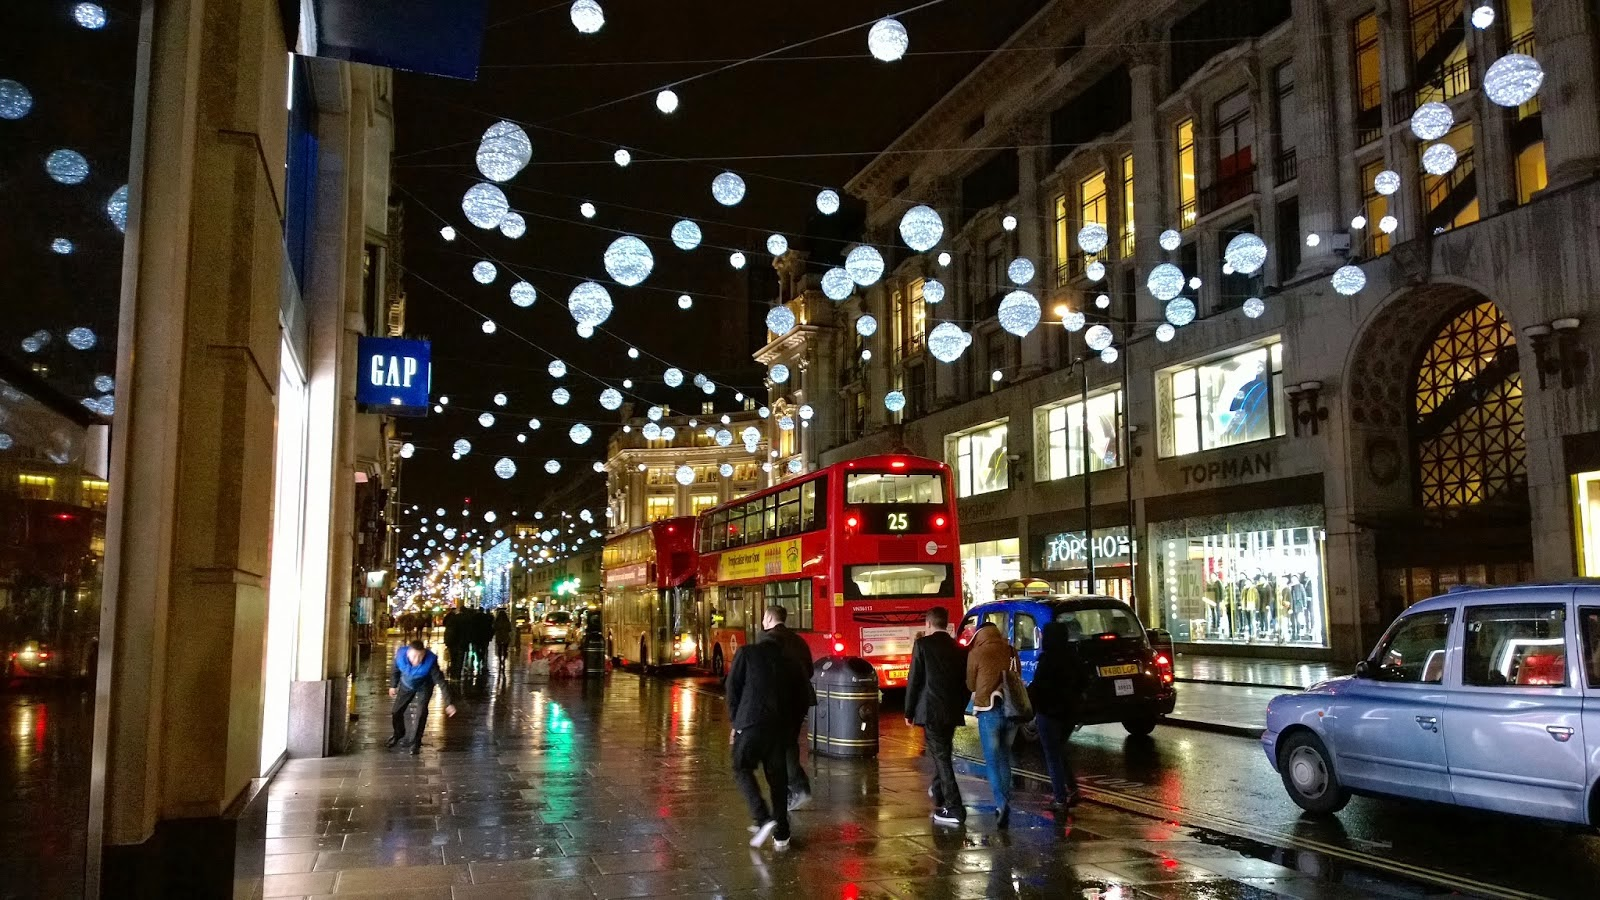 oxford street hd - photo #1